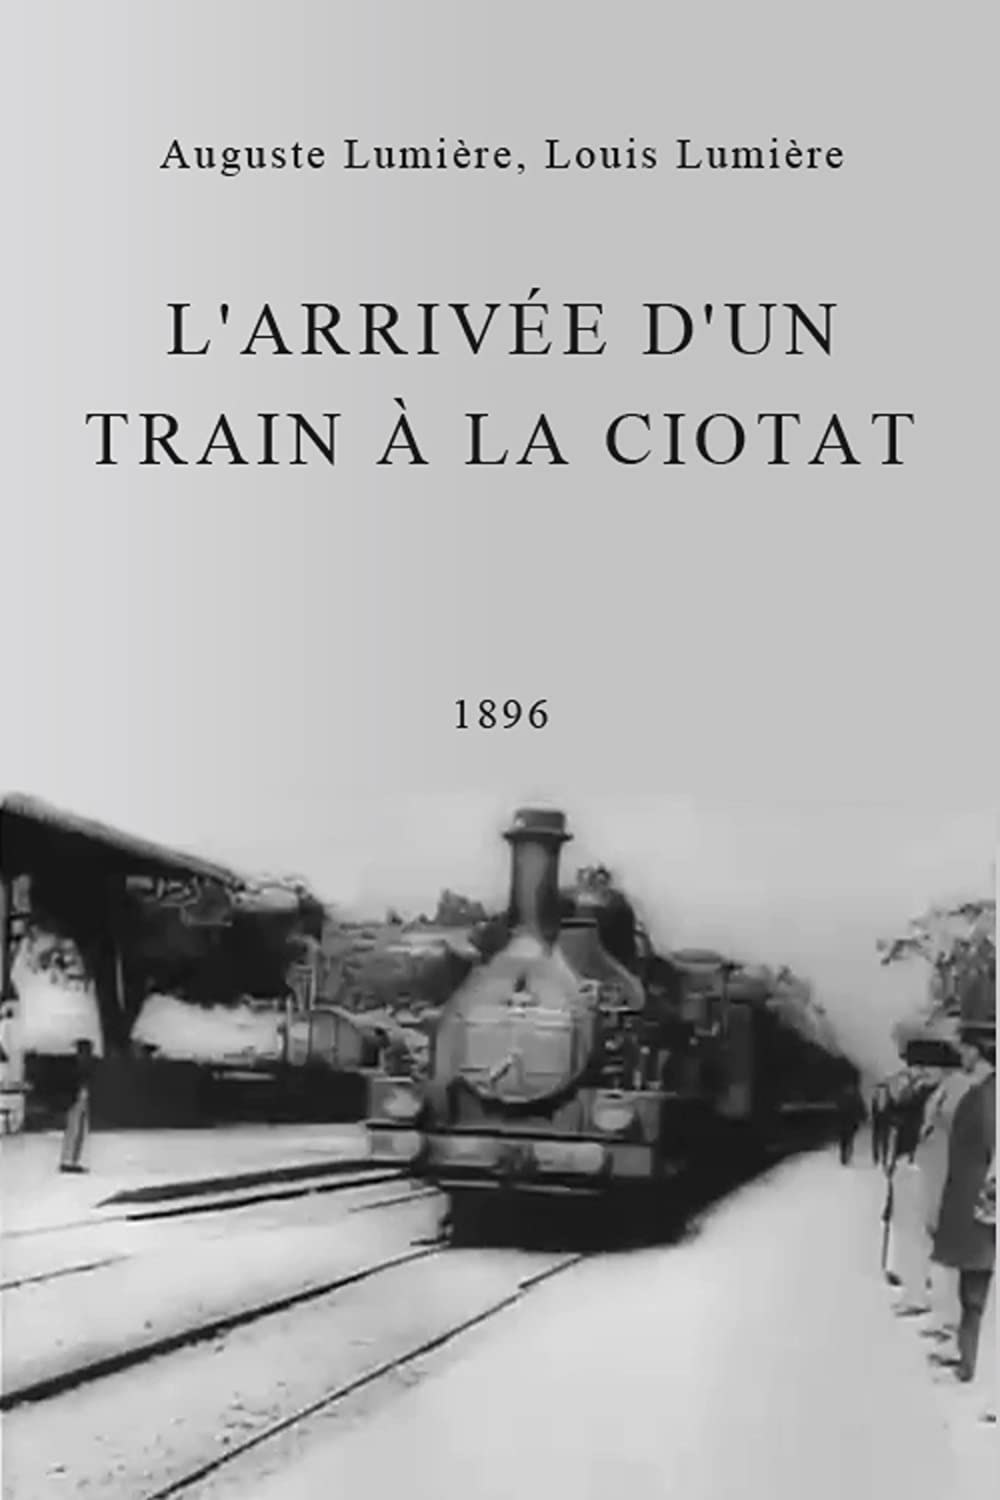 The Arrival of a Train (1896)